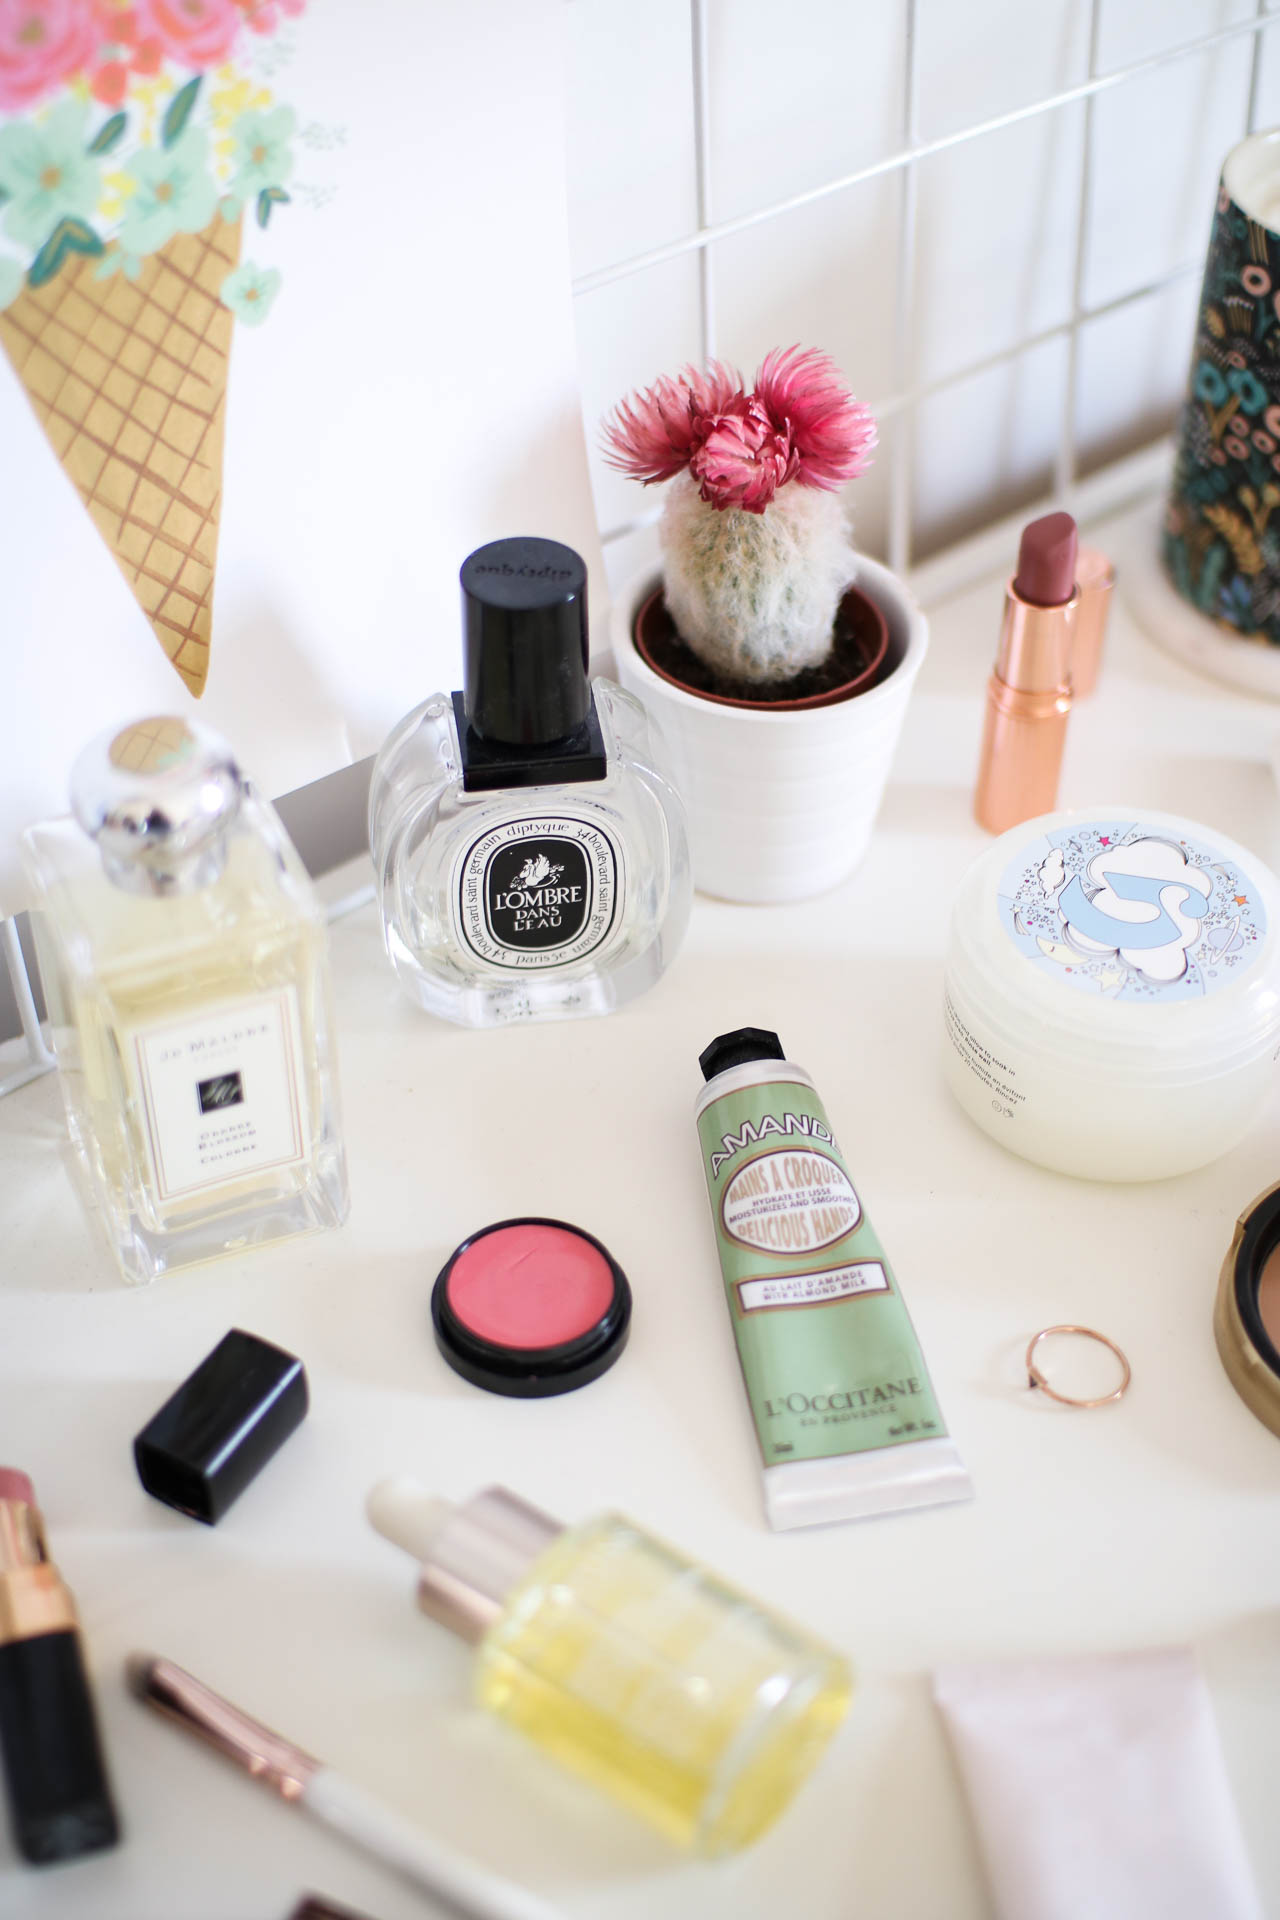 changing relationship with beauty products